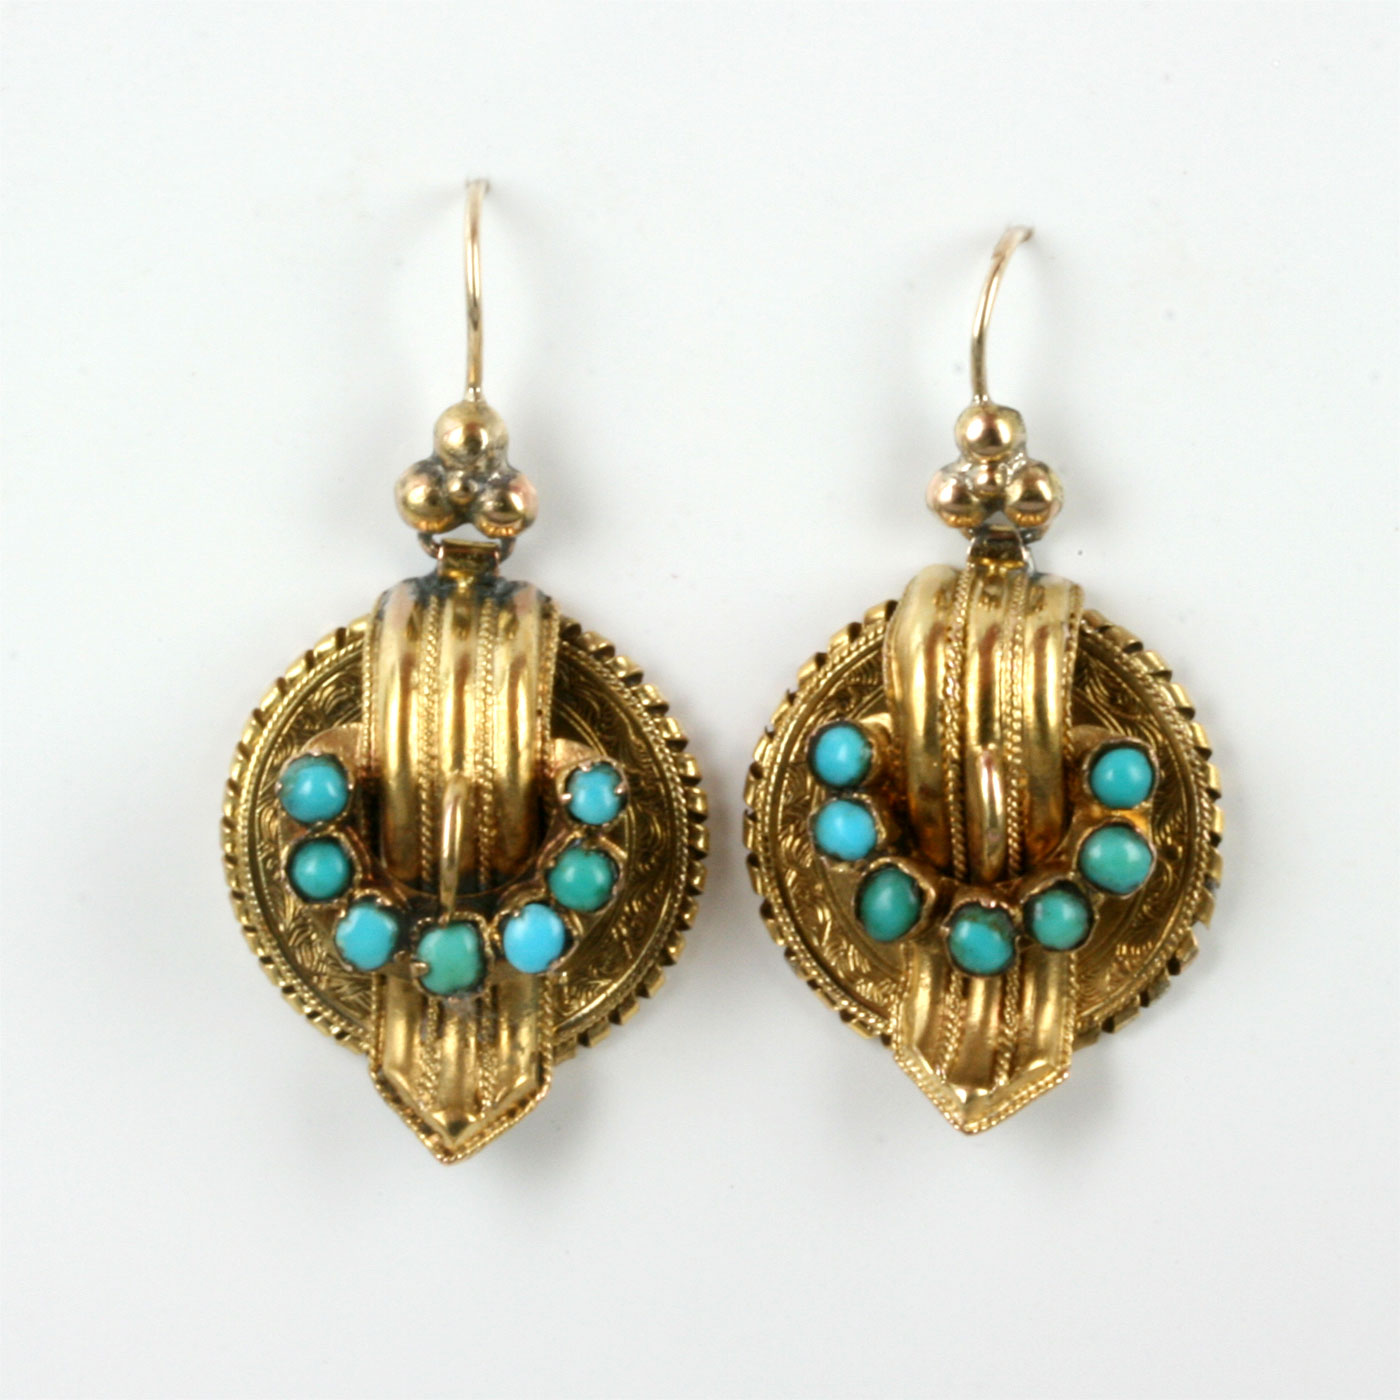 buy antique turquoise earrings in 15ct gold sold items